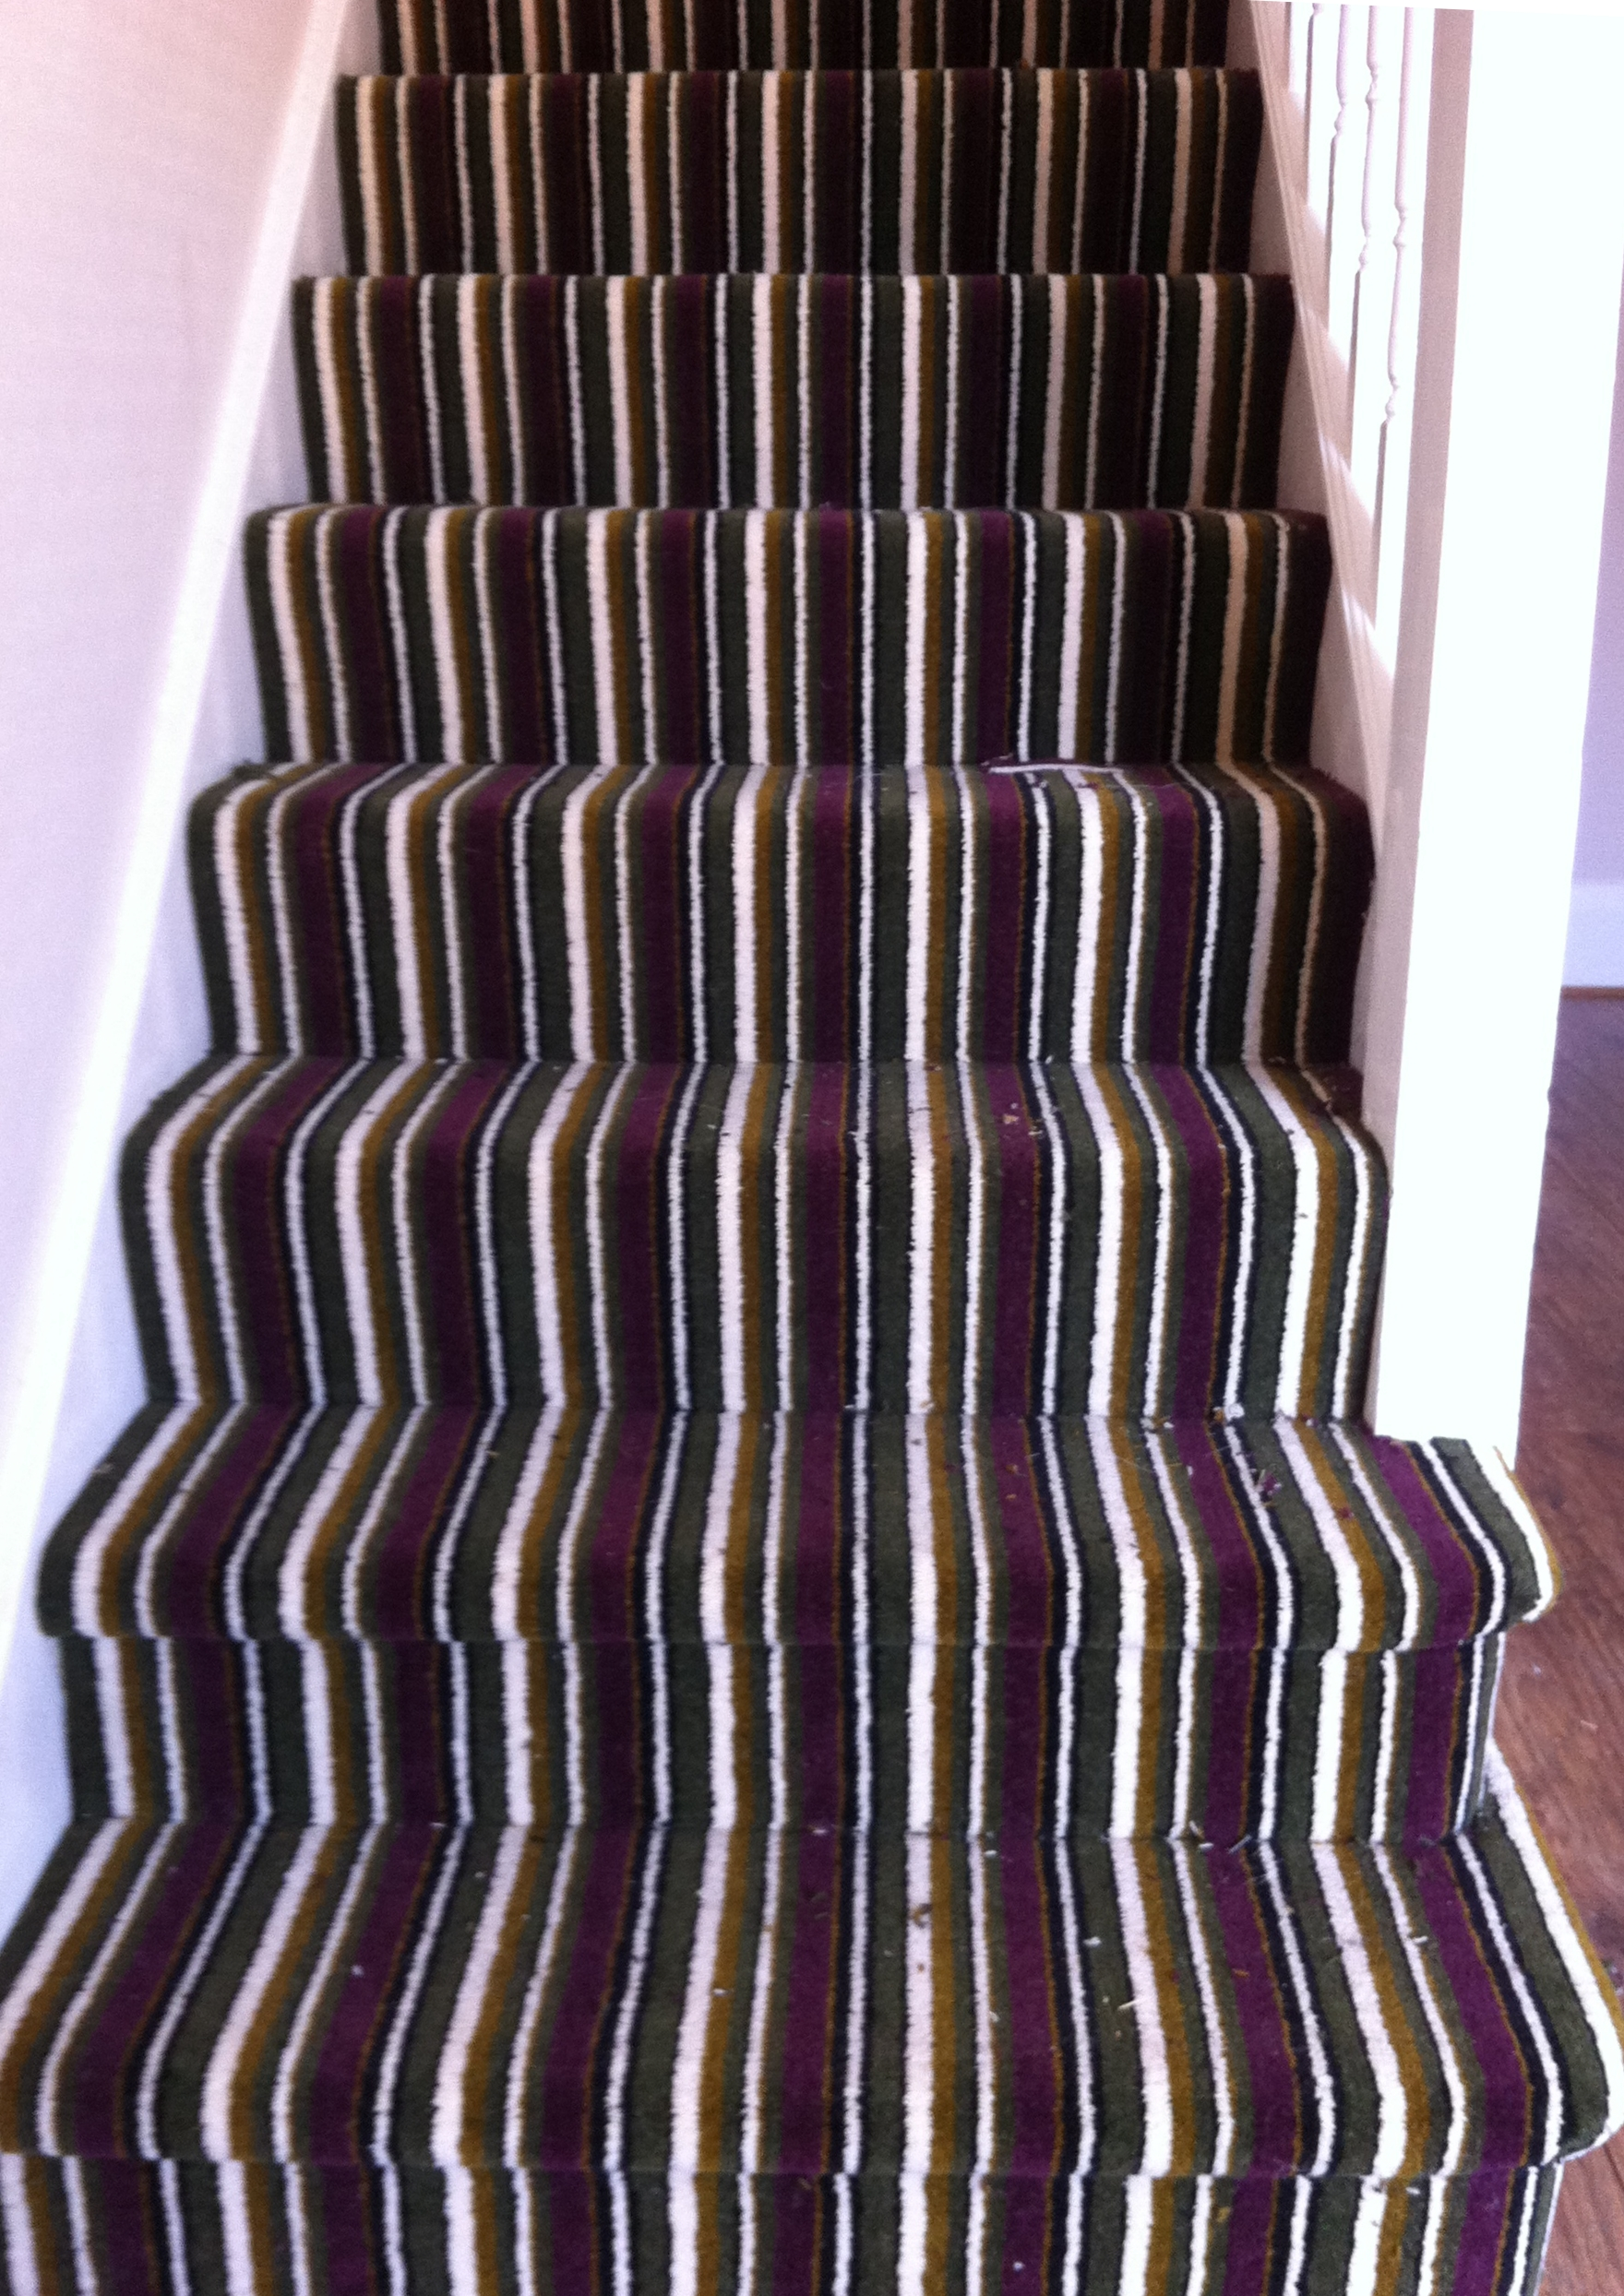 Artwork Stripe £27.99m | The Carpet Shop, North Shields